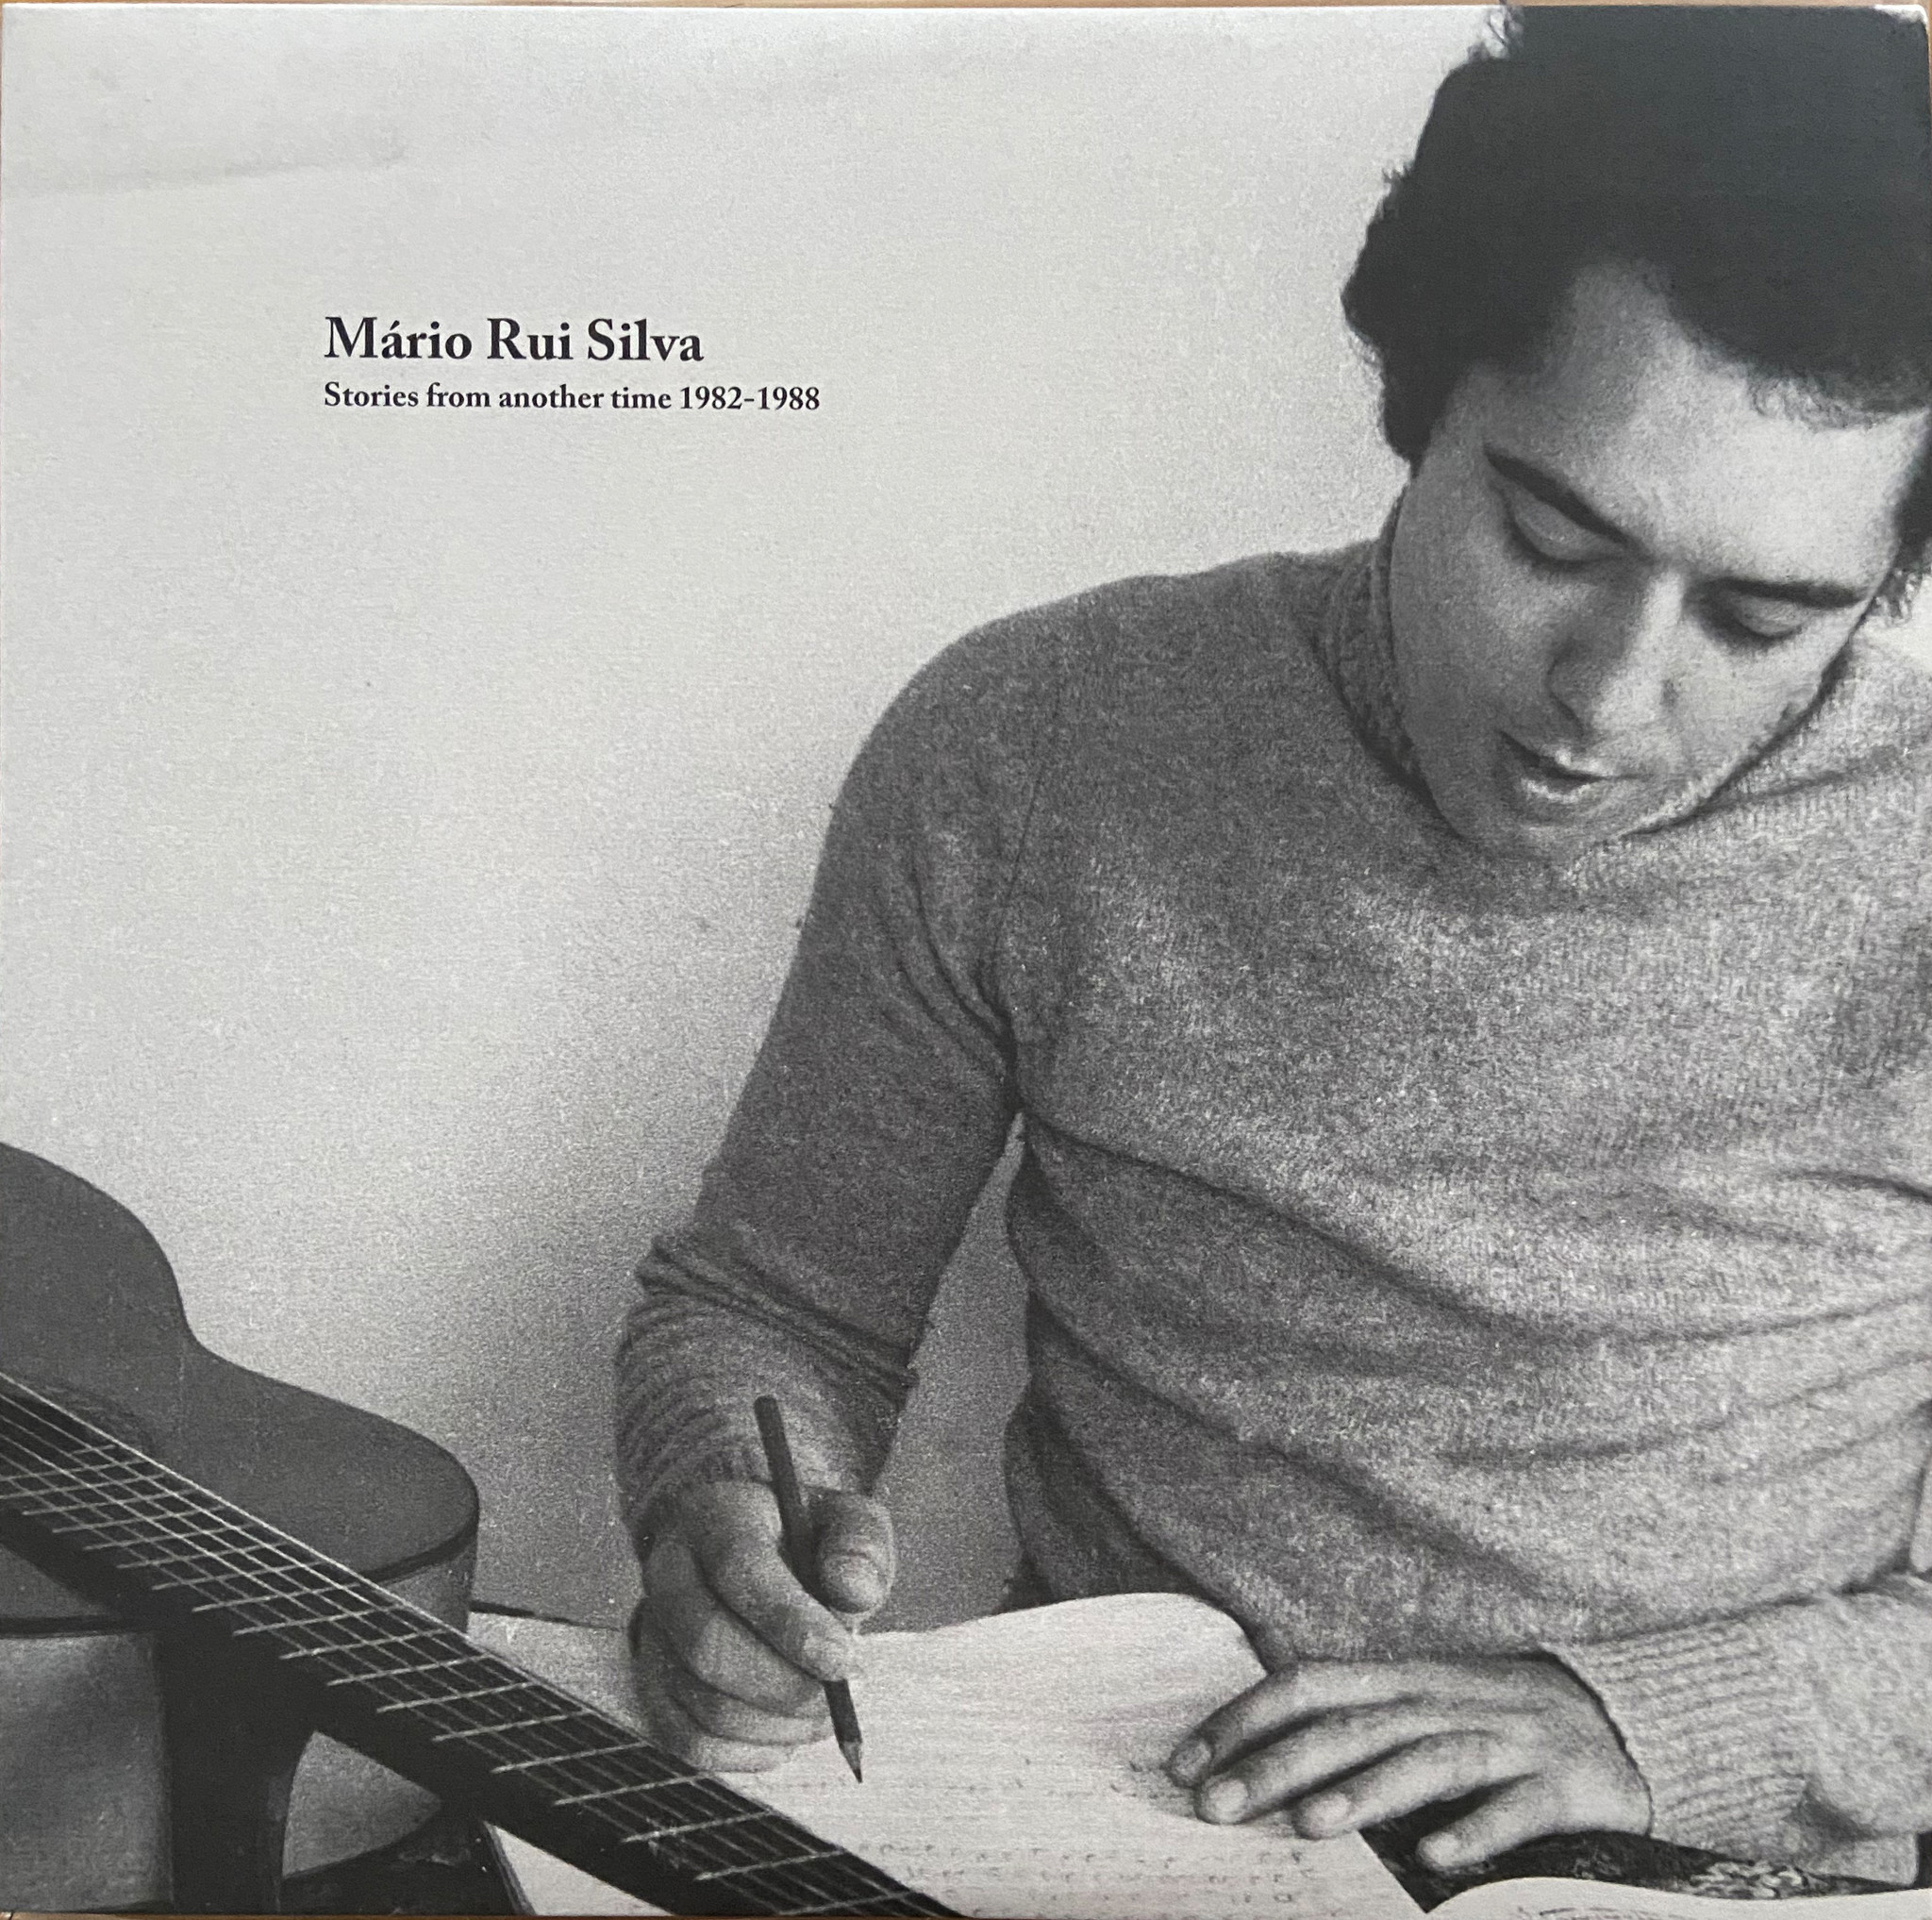 Mário Rui Silva - Stories from another time 1982-1988